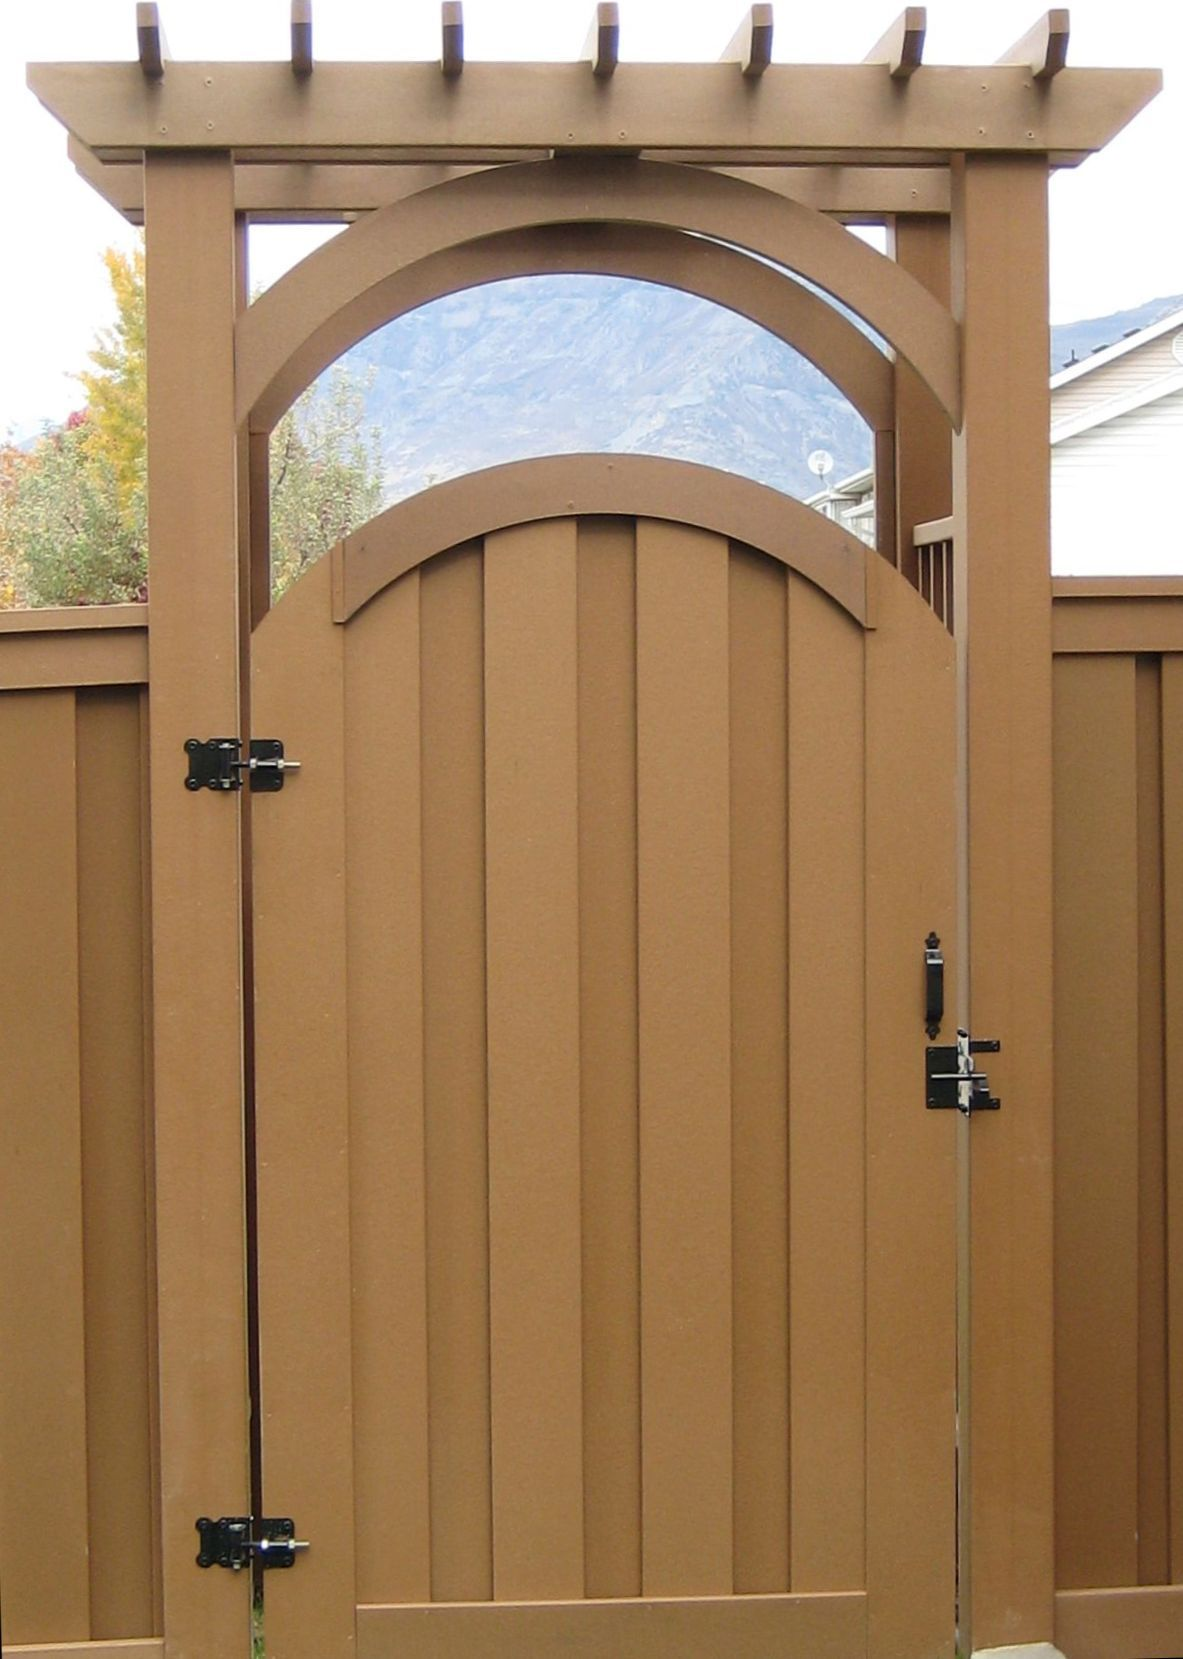 Gallery Fence gate Composite fencing and Google images